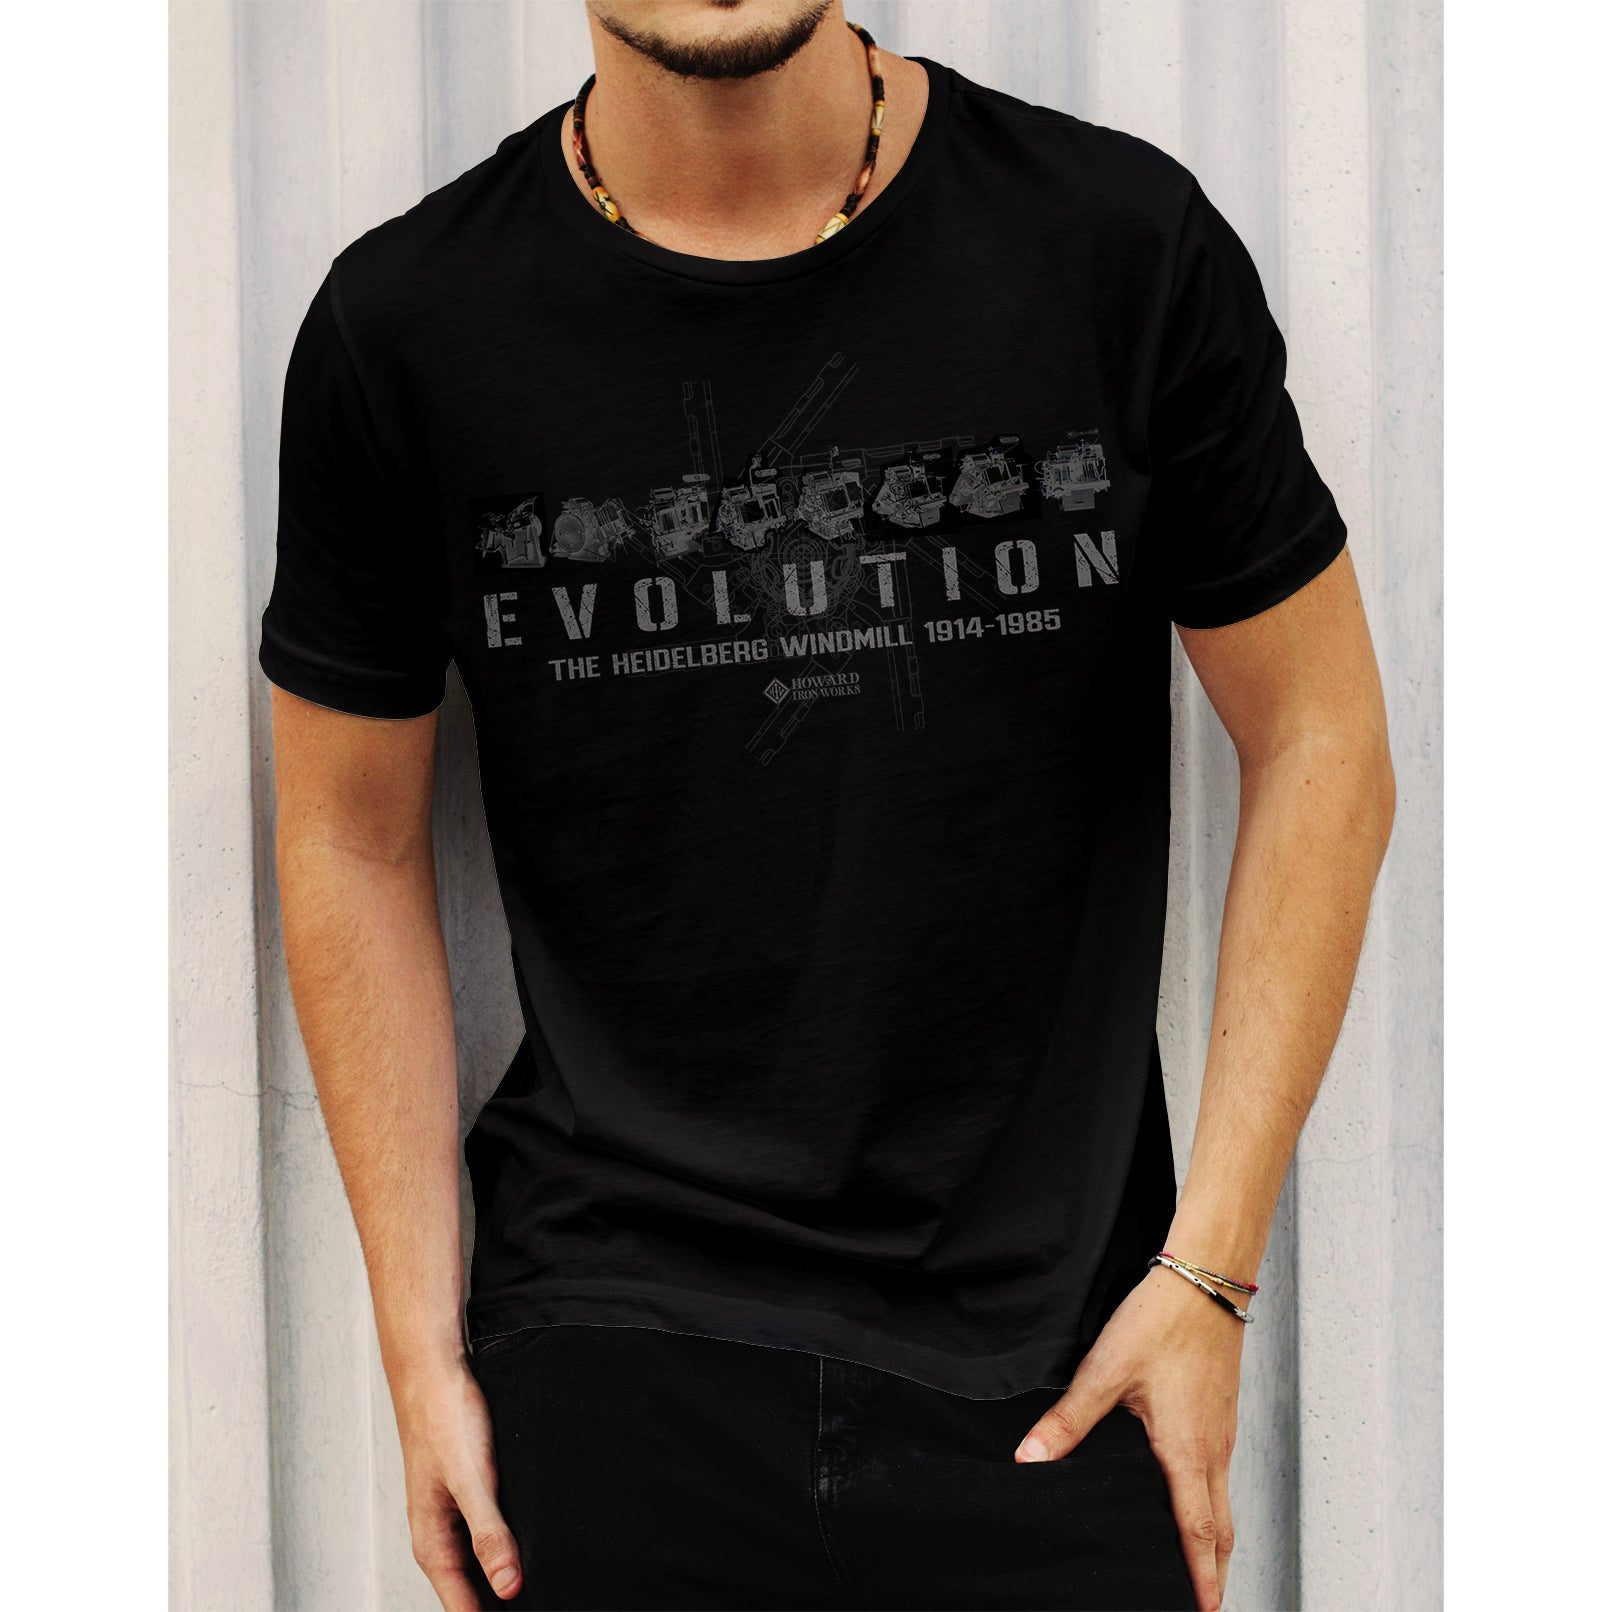 T-Shirt Short Sleeve Evolution Men's - Black